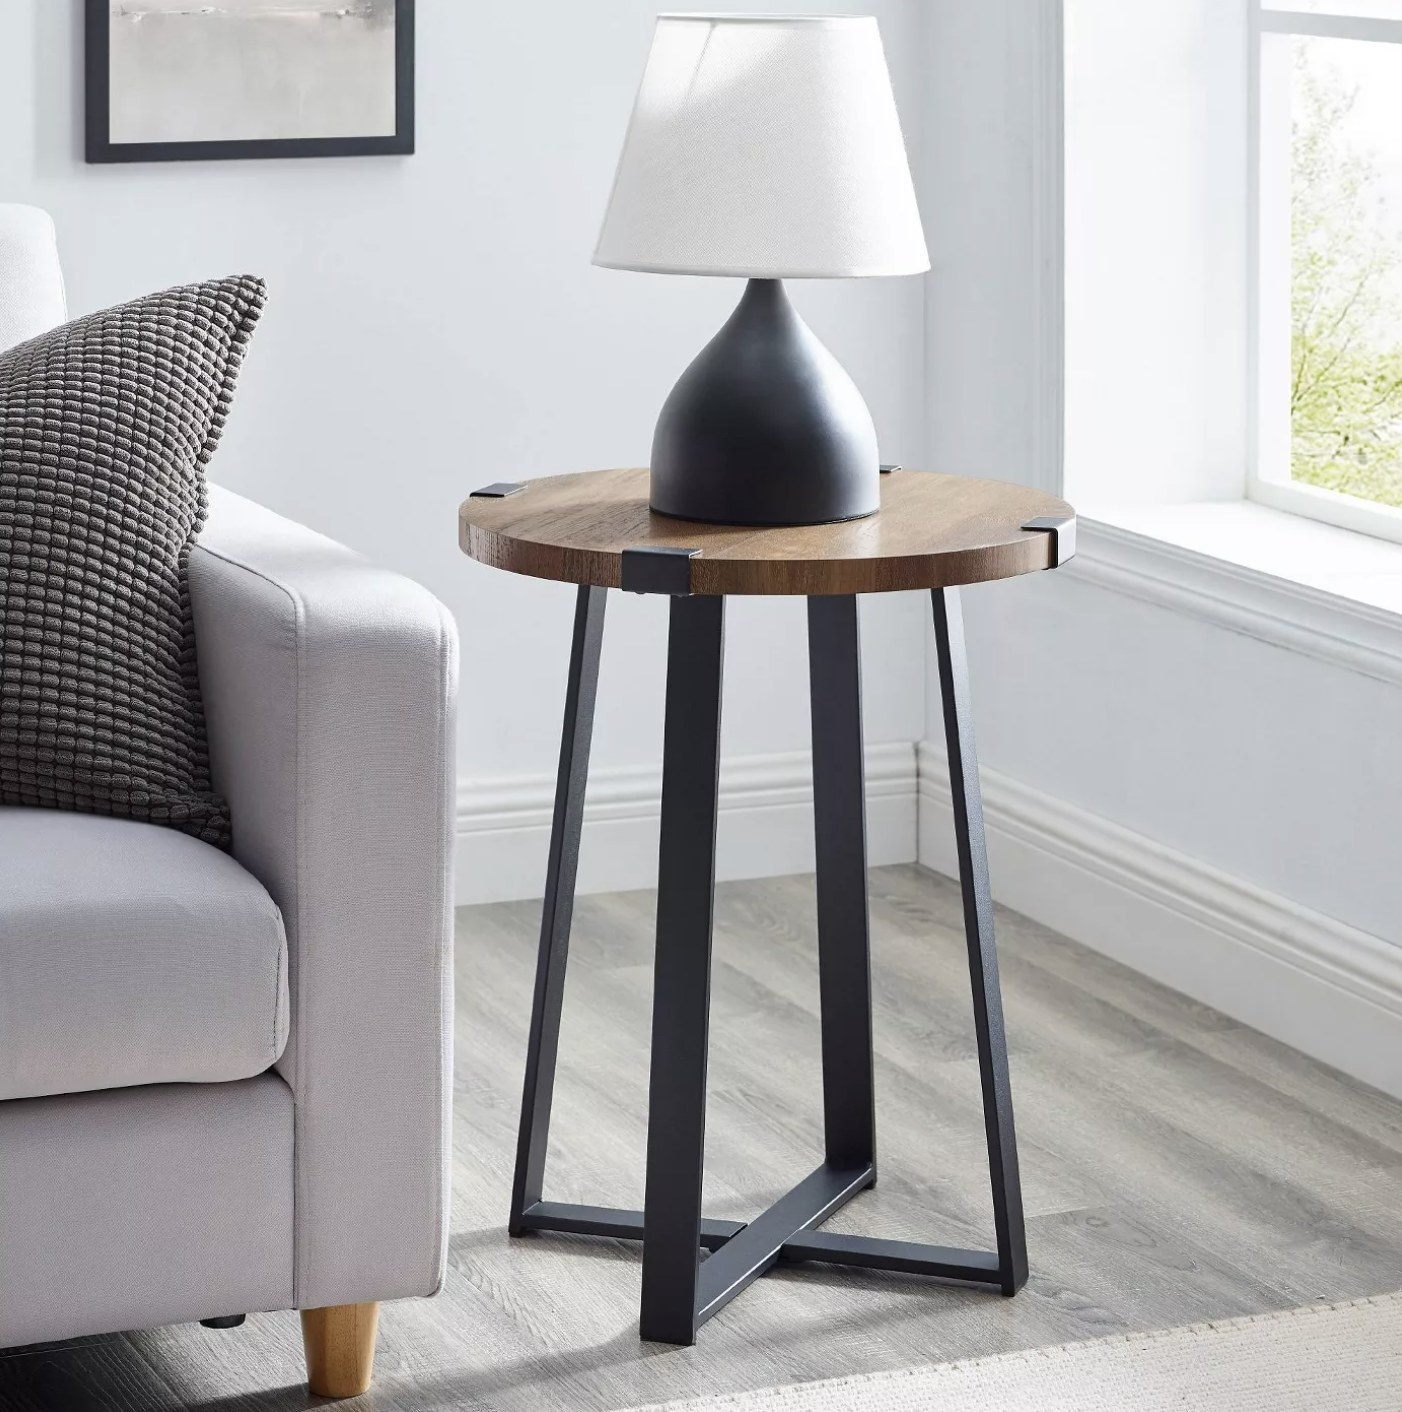 The side table